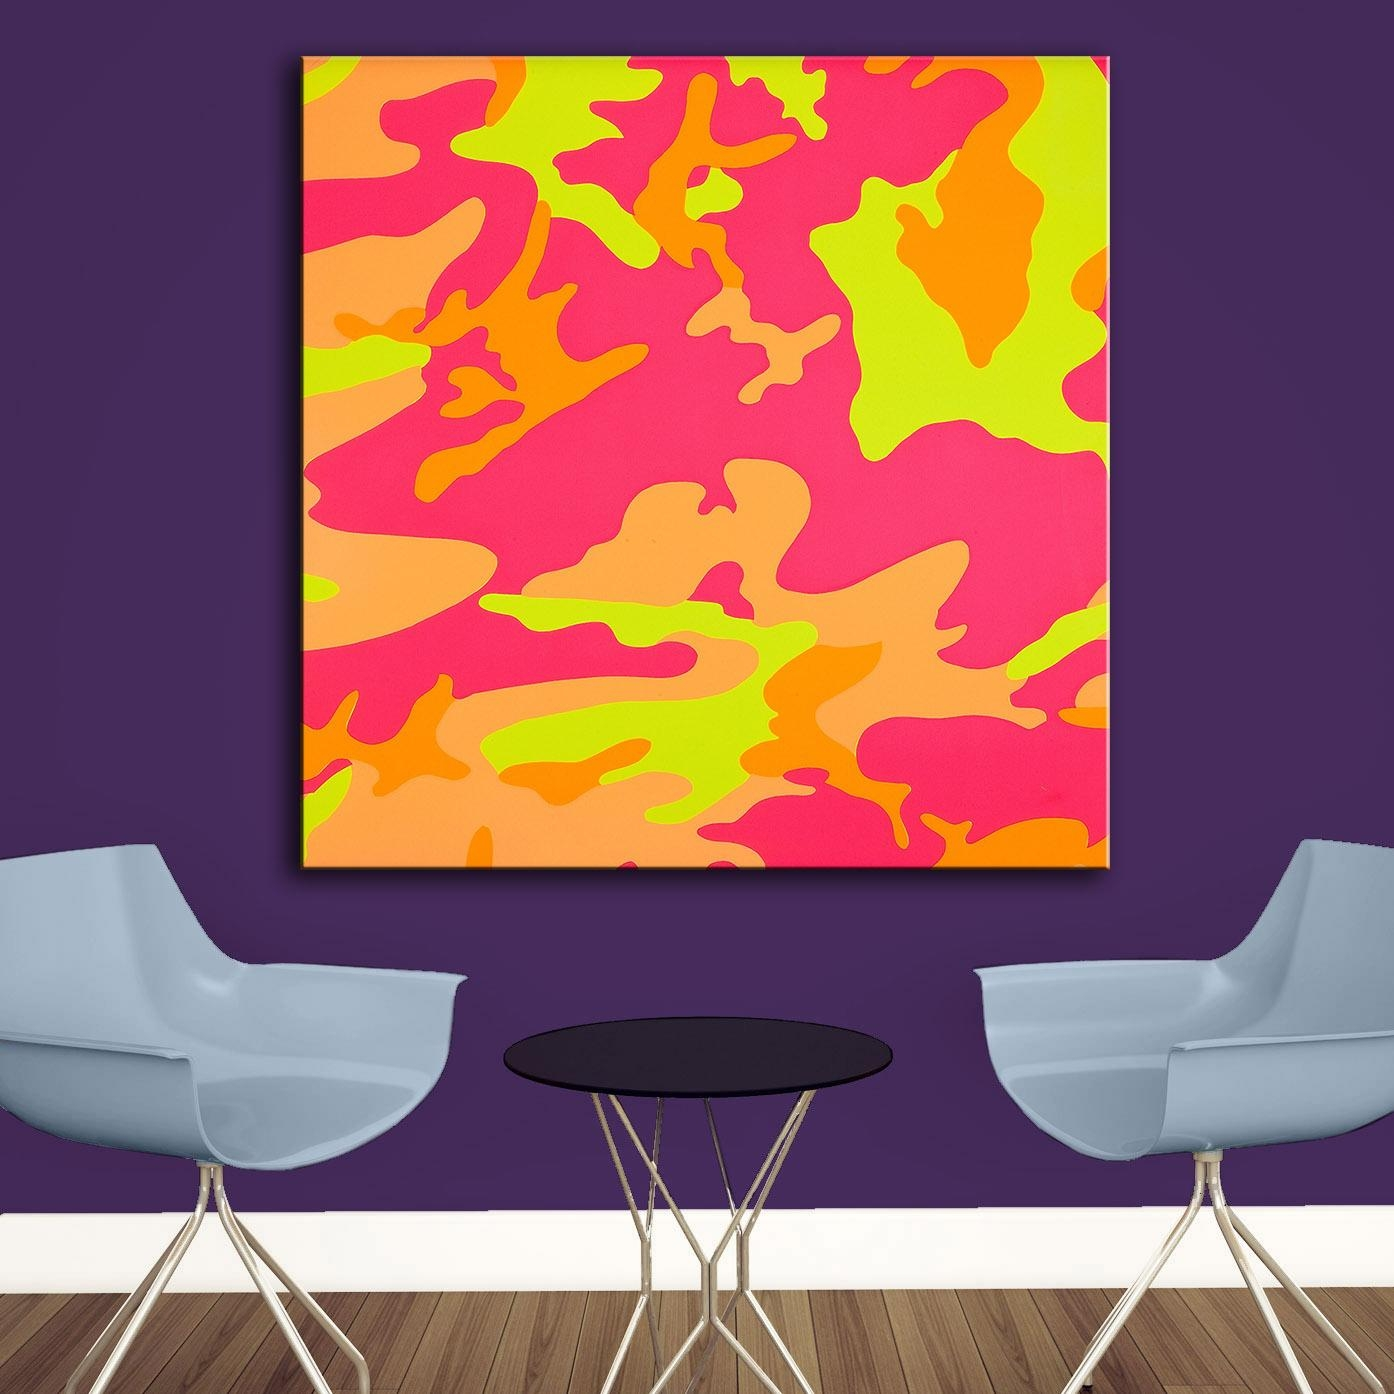 Compare Prices On Camouflage Wall Art  Online Shopping/buy Low With Camouflage Wall Art (Image 8 of 20)